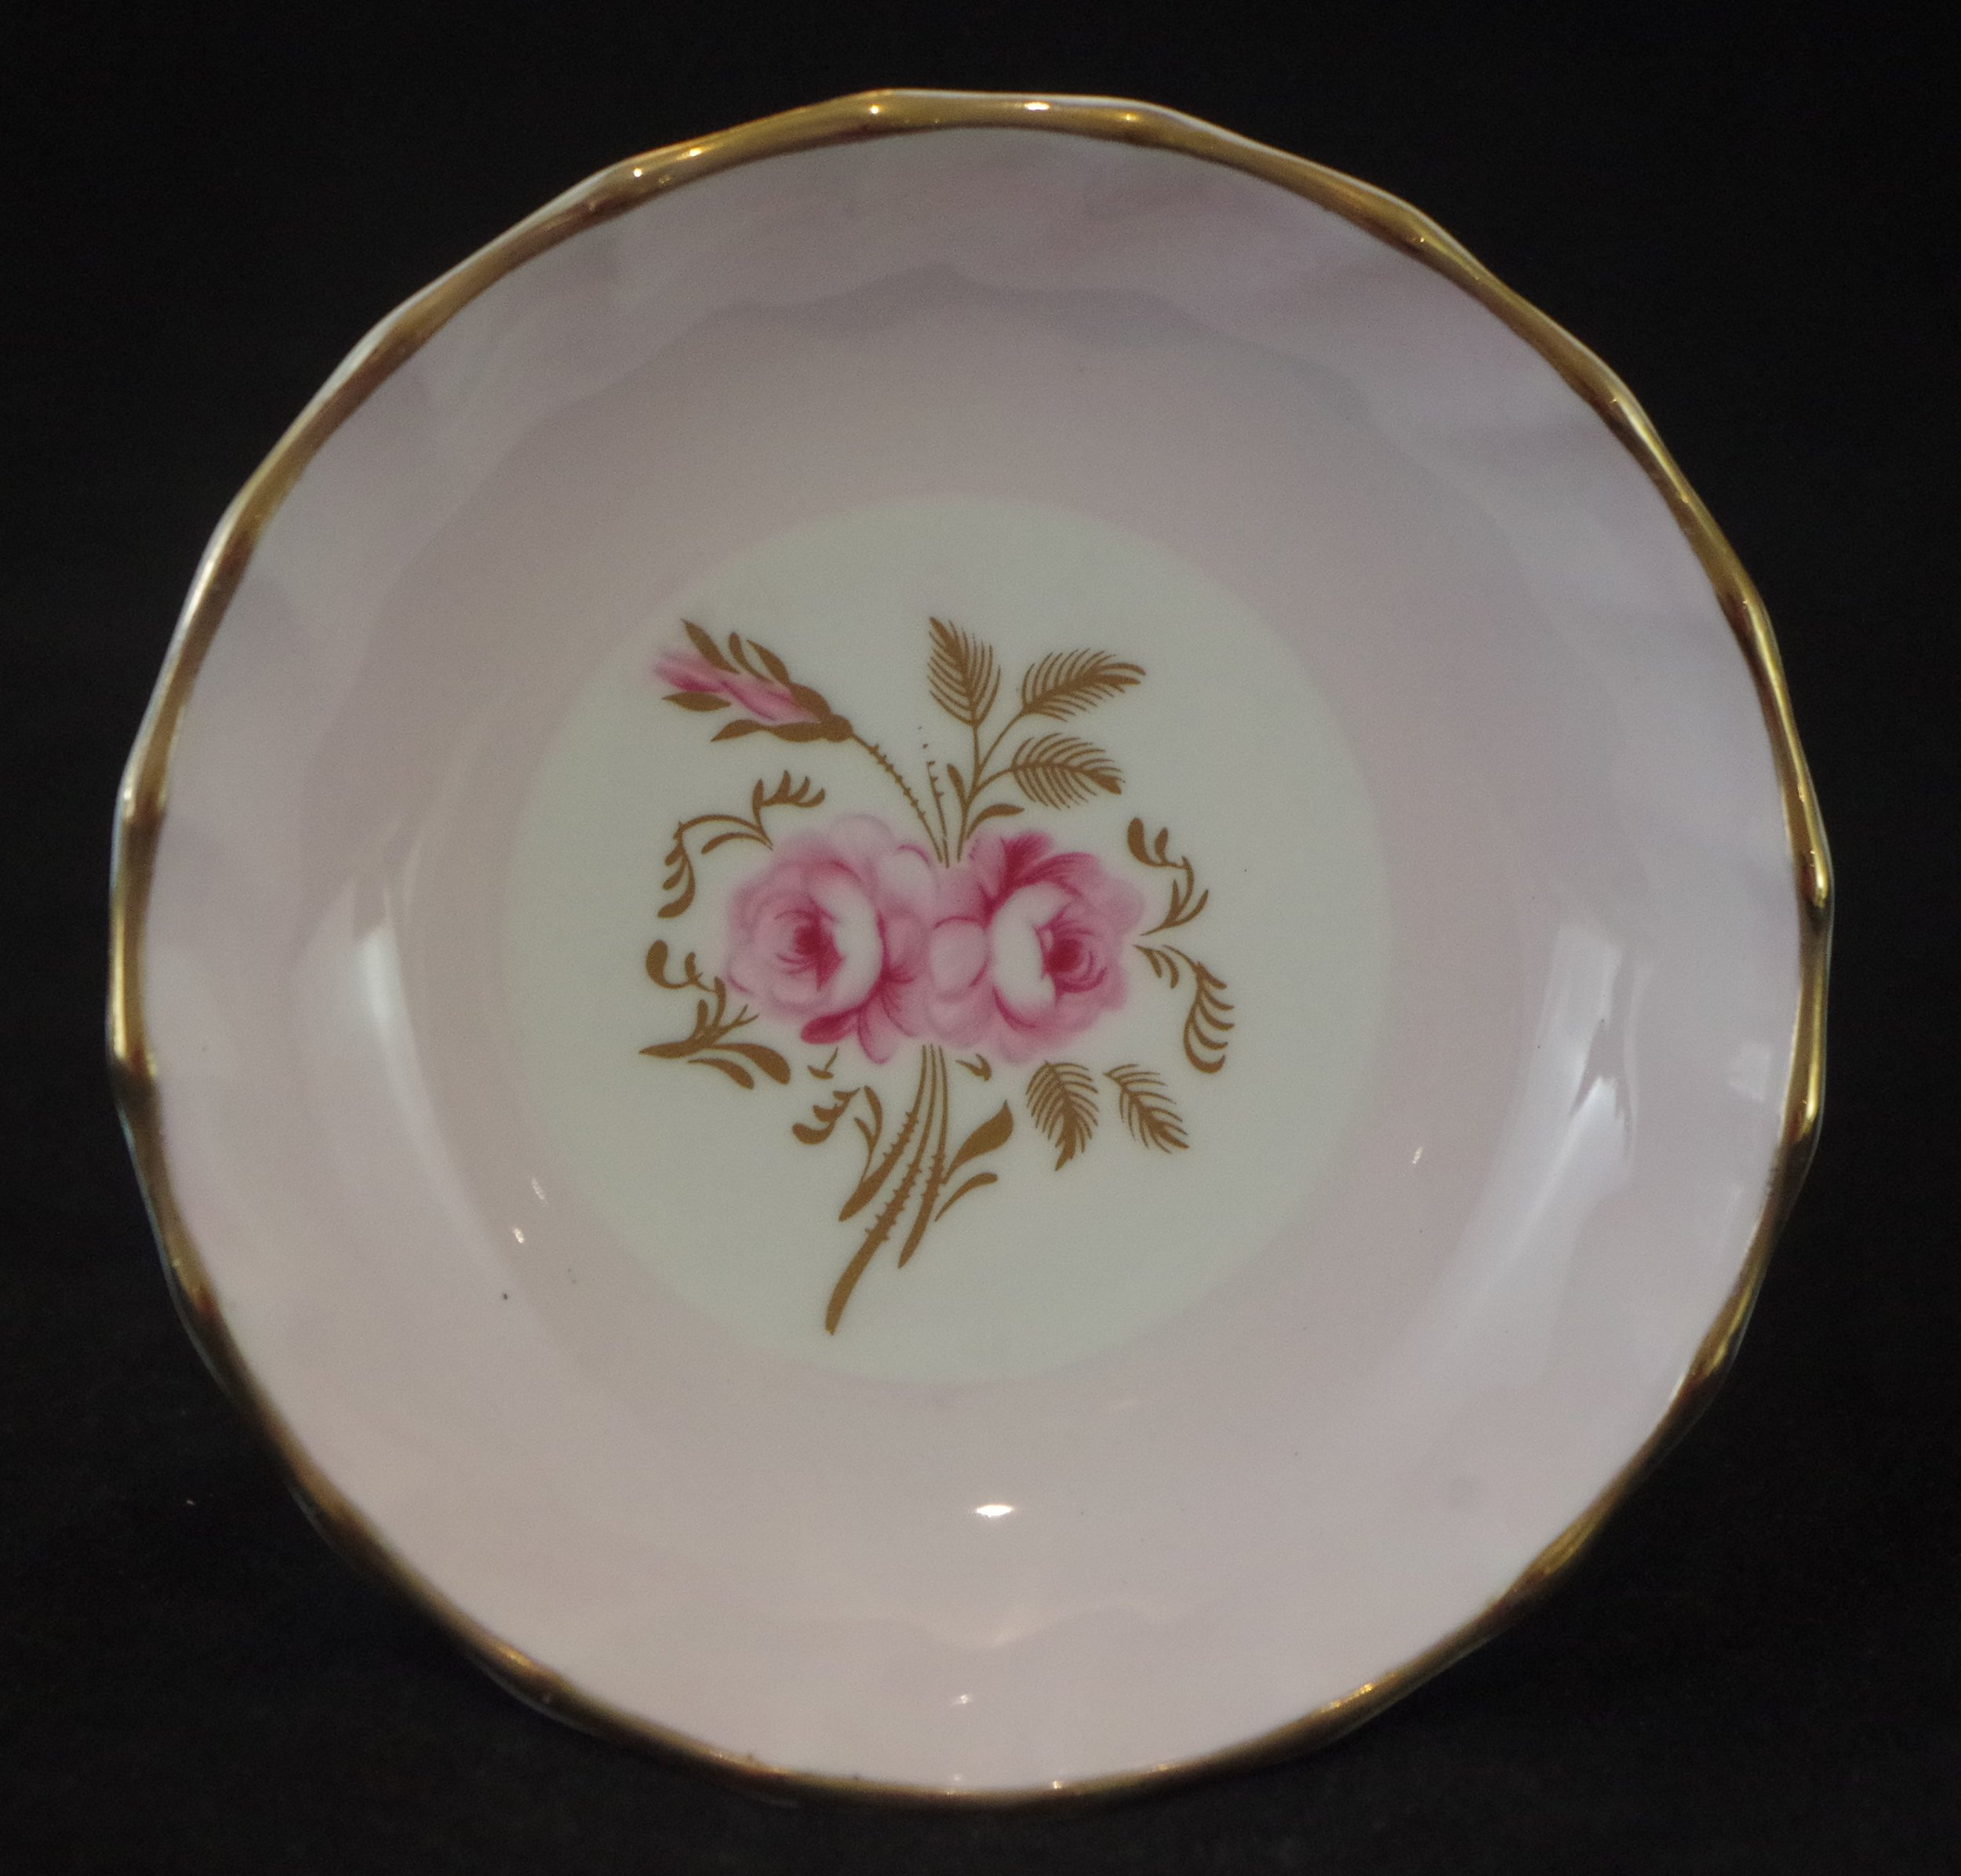 royal-crown-derby-boston-round-tray-salmon-pinxton-roses